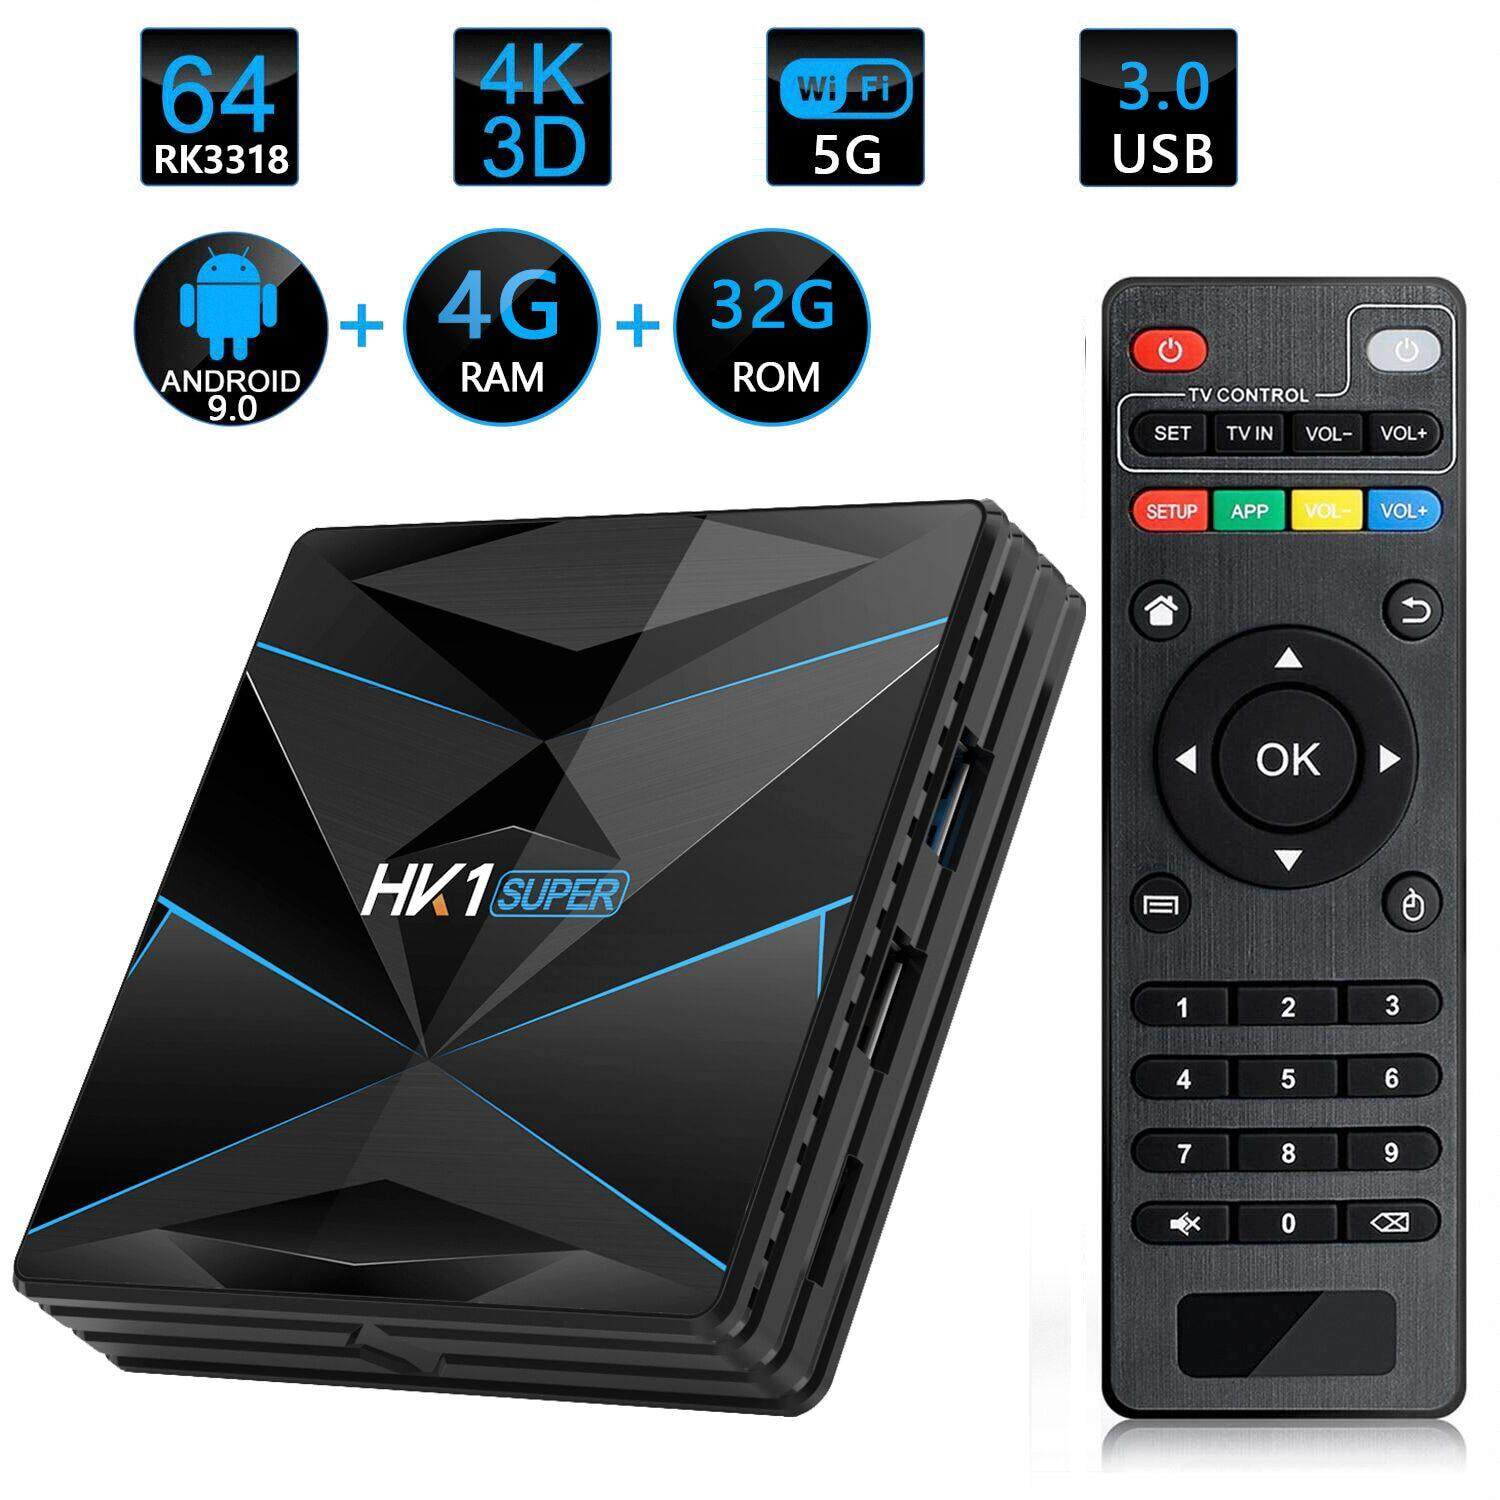 สอนใช้งาน  ปัตตานี  HK1 Super  Android 9 0 Smart TV BOX Google asistente RK3318 4K 3D Ultra HD 4G 64G TV wifi Play Store Apps gratis rápido Set top Box